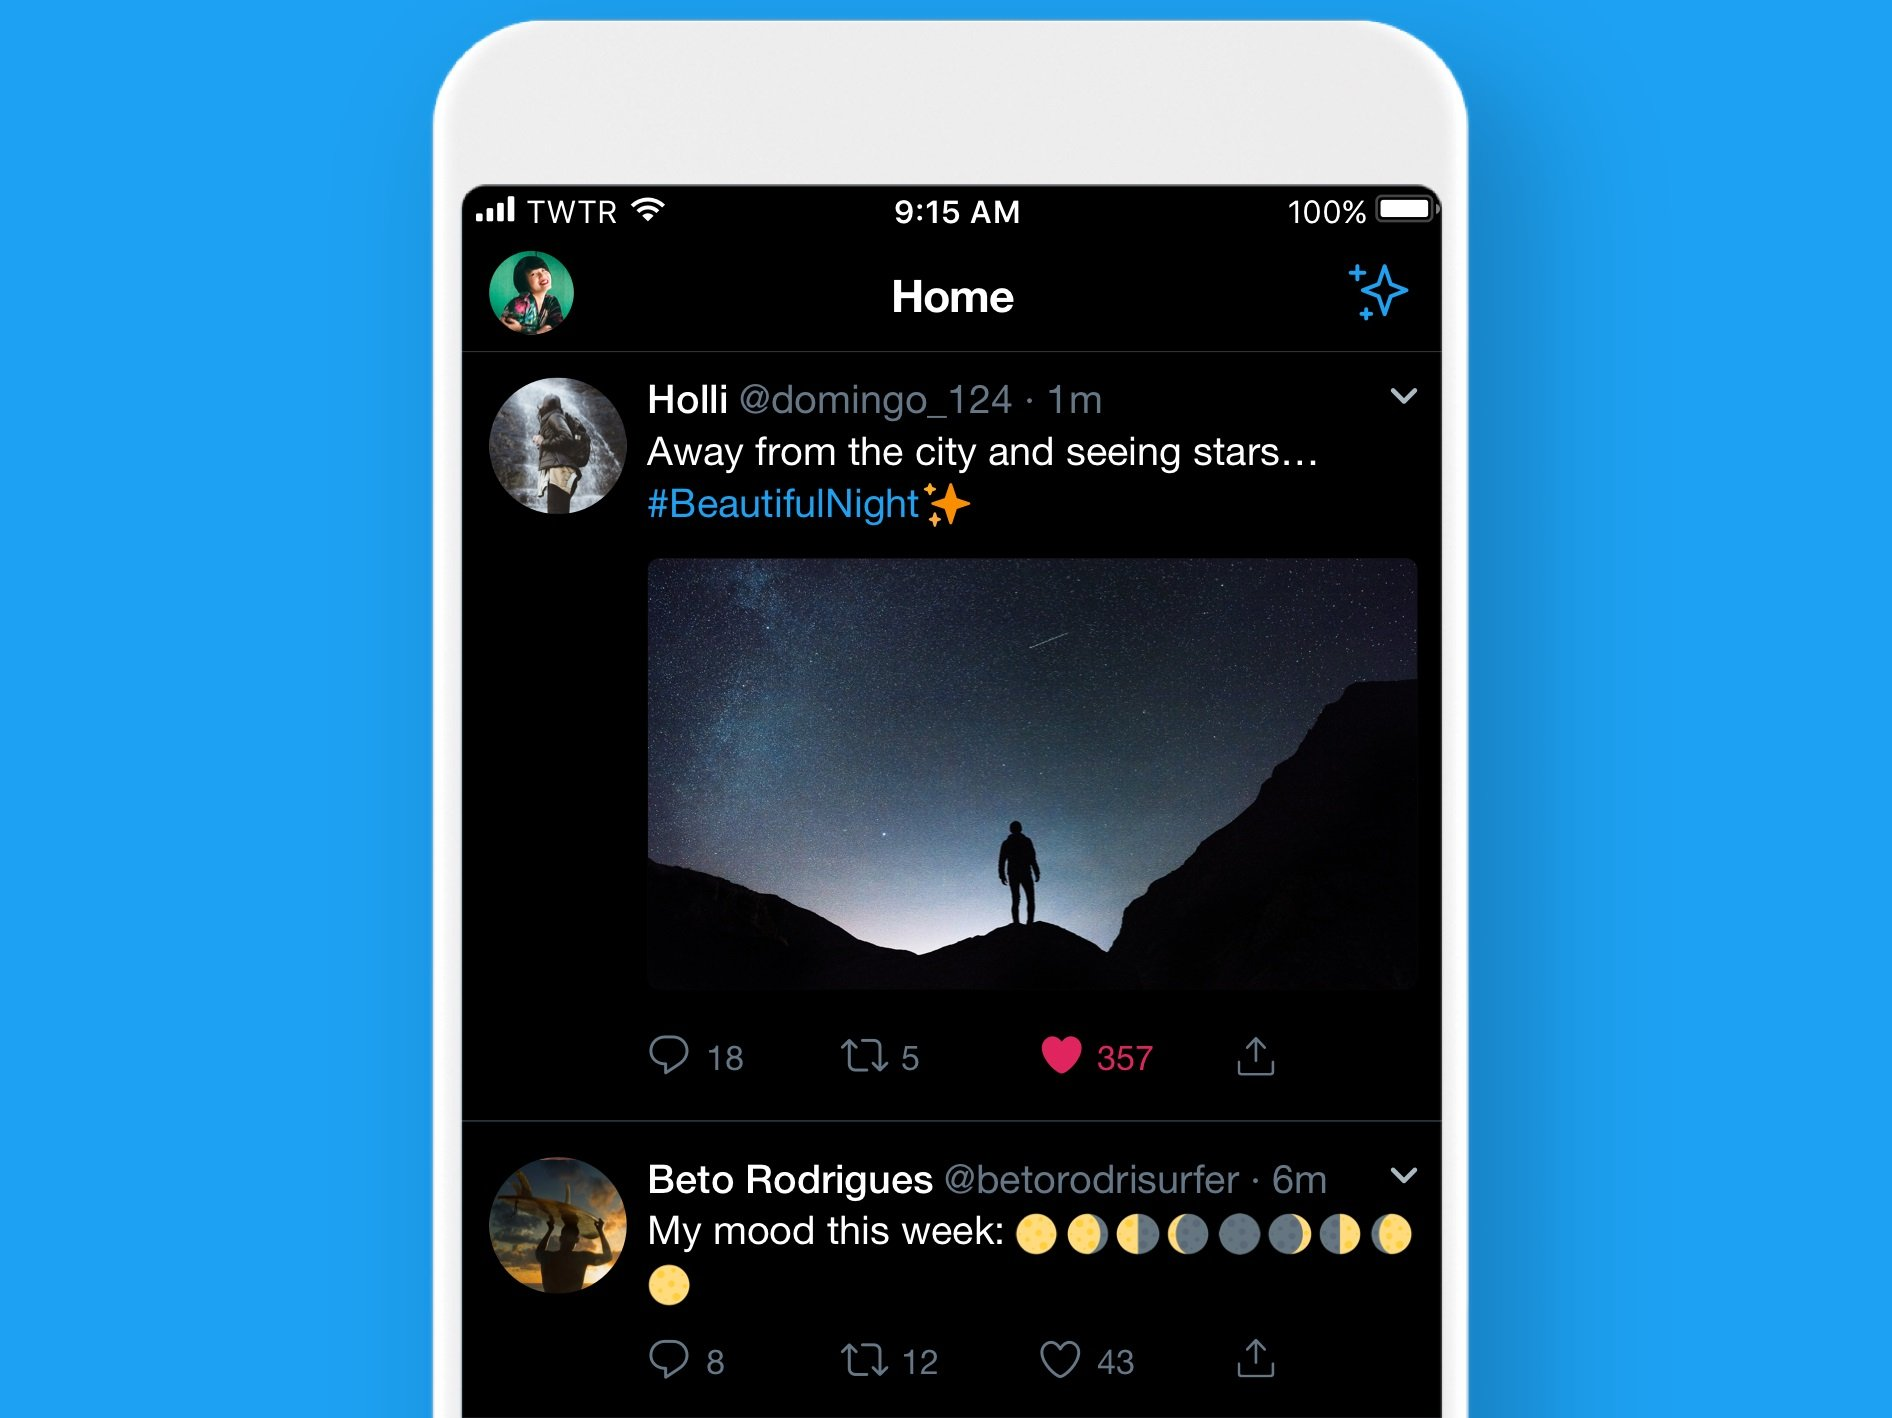 Twitter expands dark mode options on iOS - OrissaPOST